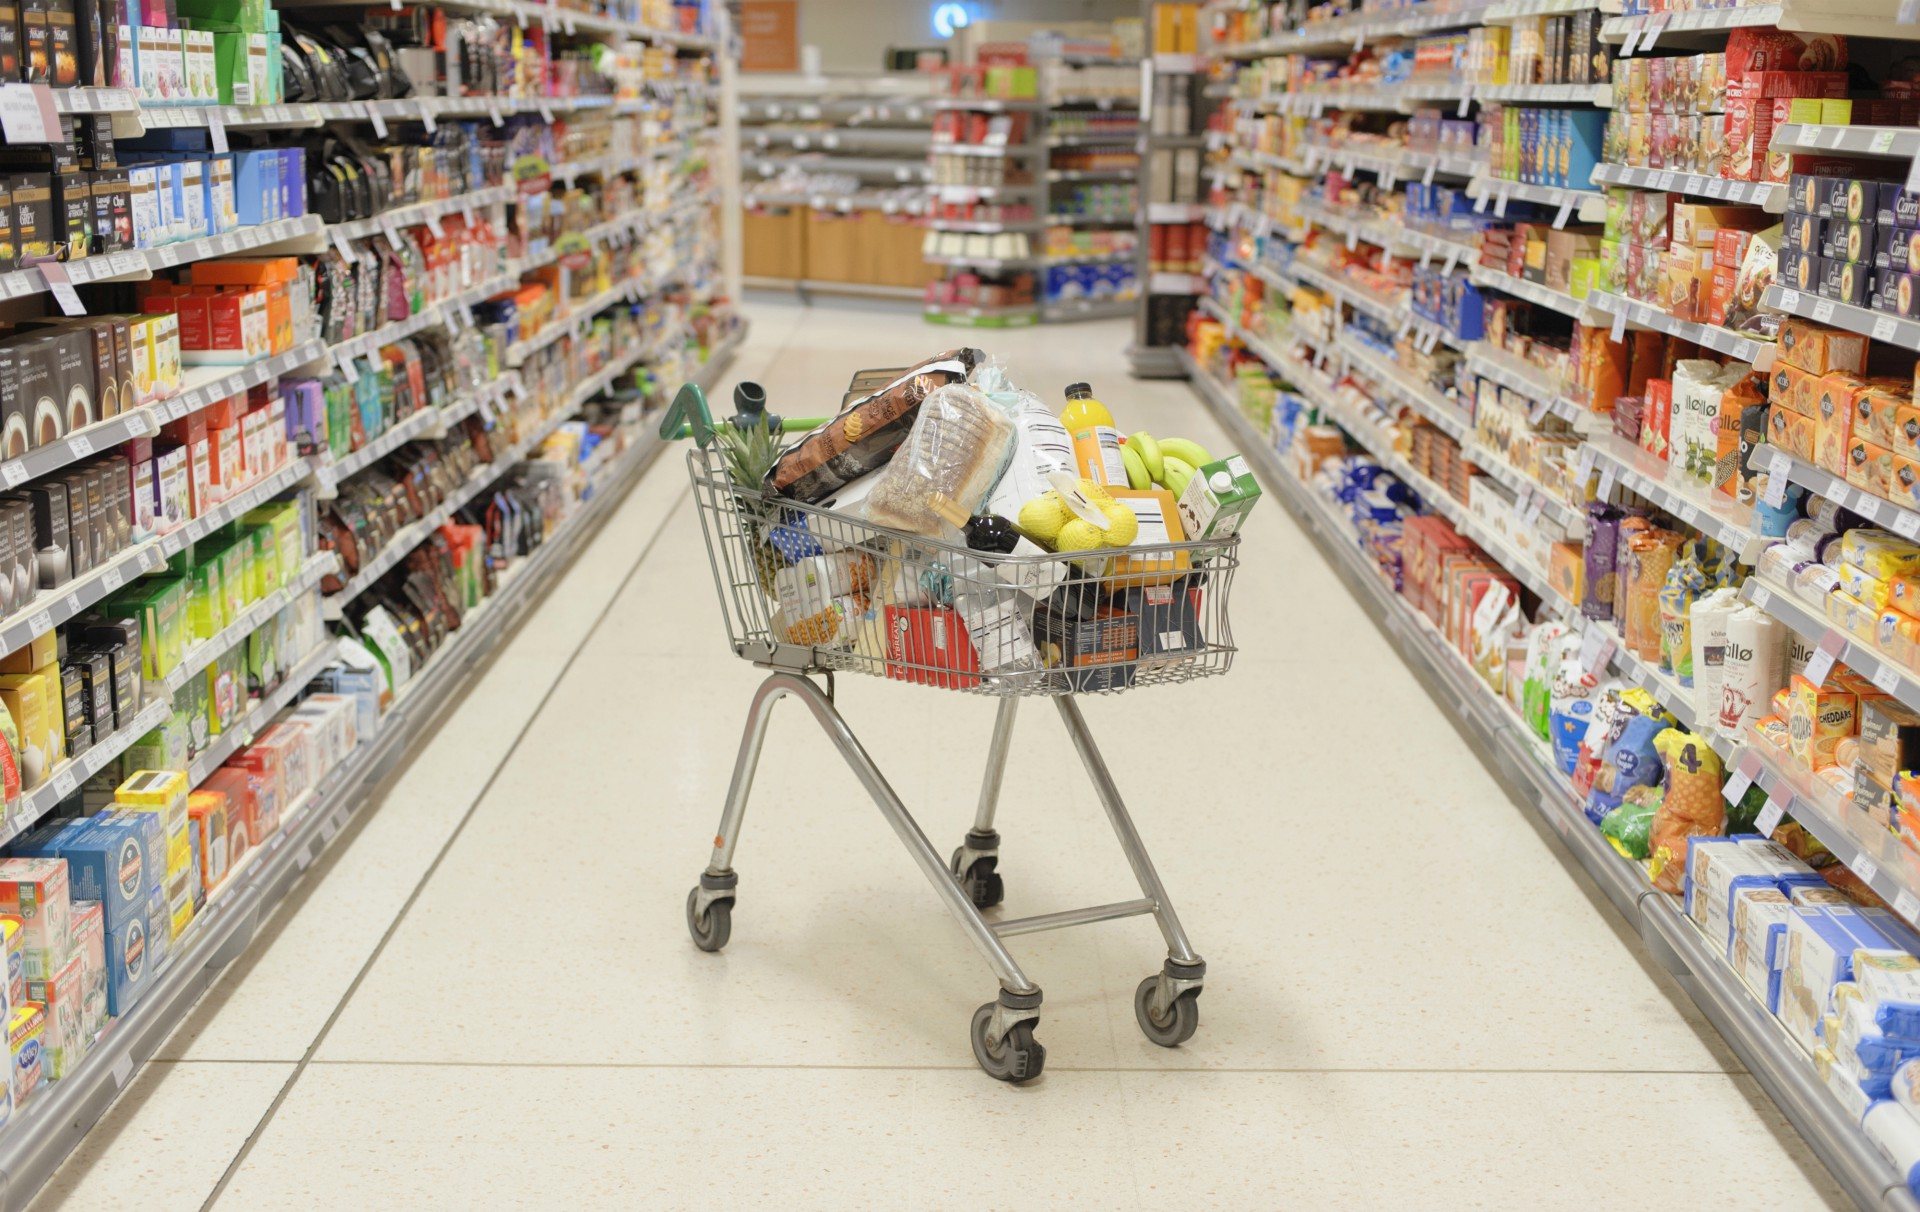 Supermarkets accused of secretly filming customer to record their shopping habits